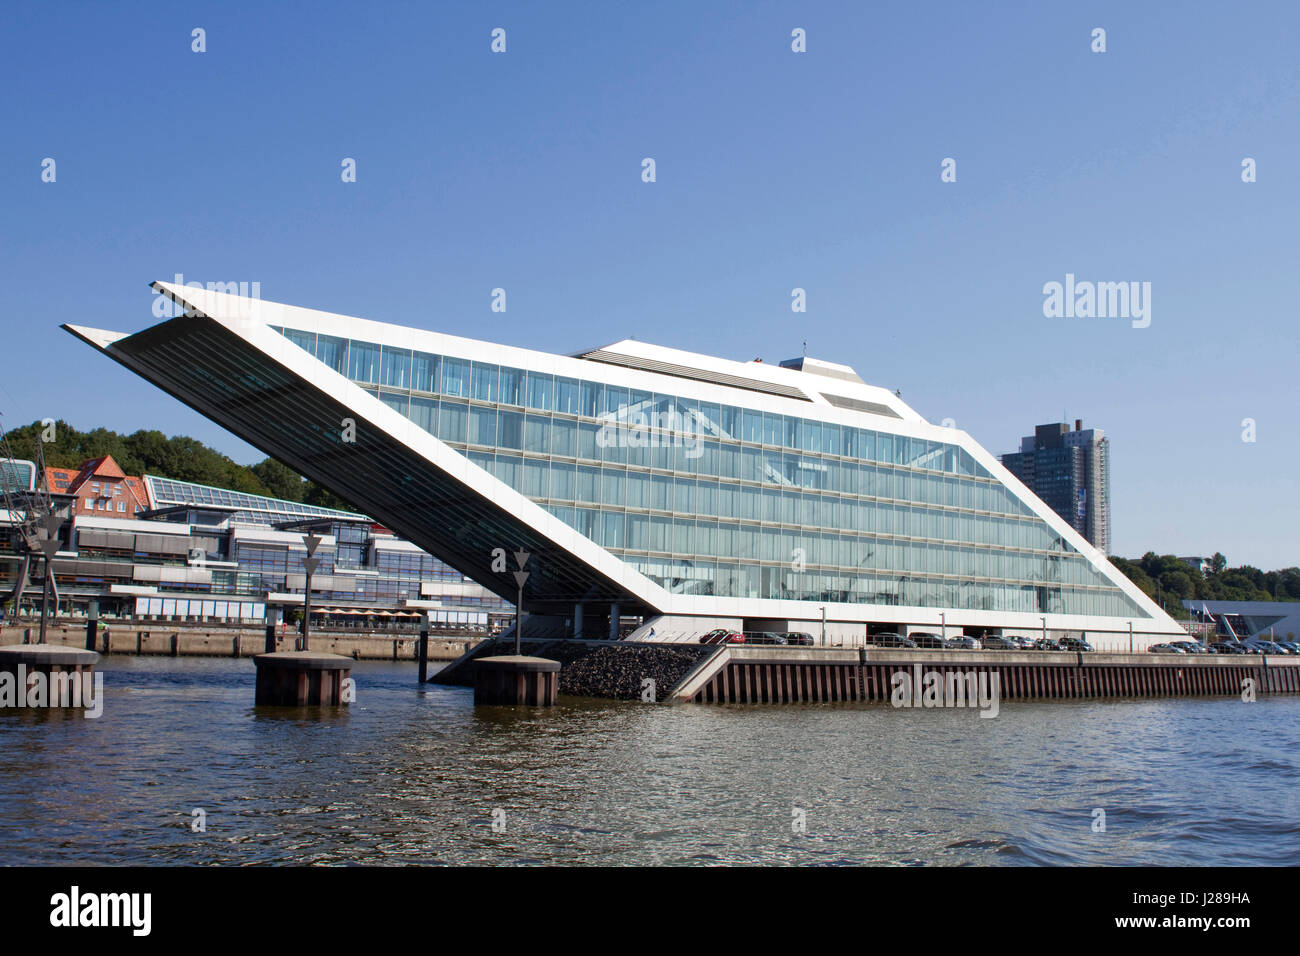 germany hamburg elbe river dockland office building brt stock photo royalty free image. Black Bedroom Furniture Sets. Home Design Ideas